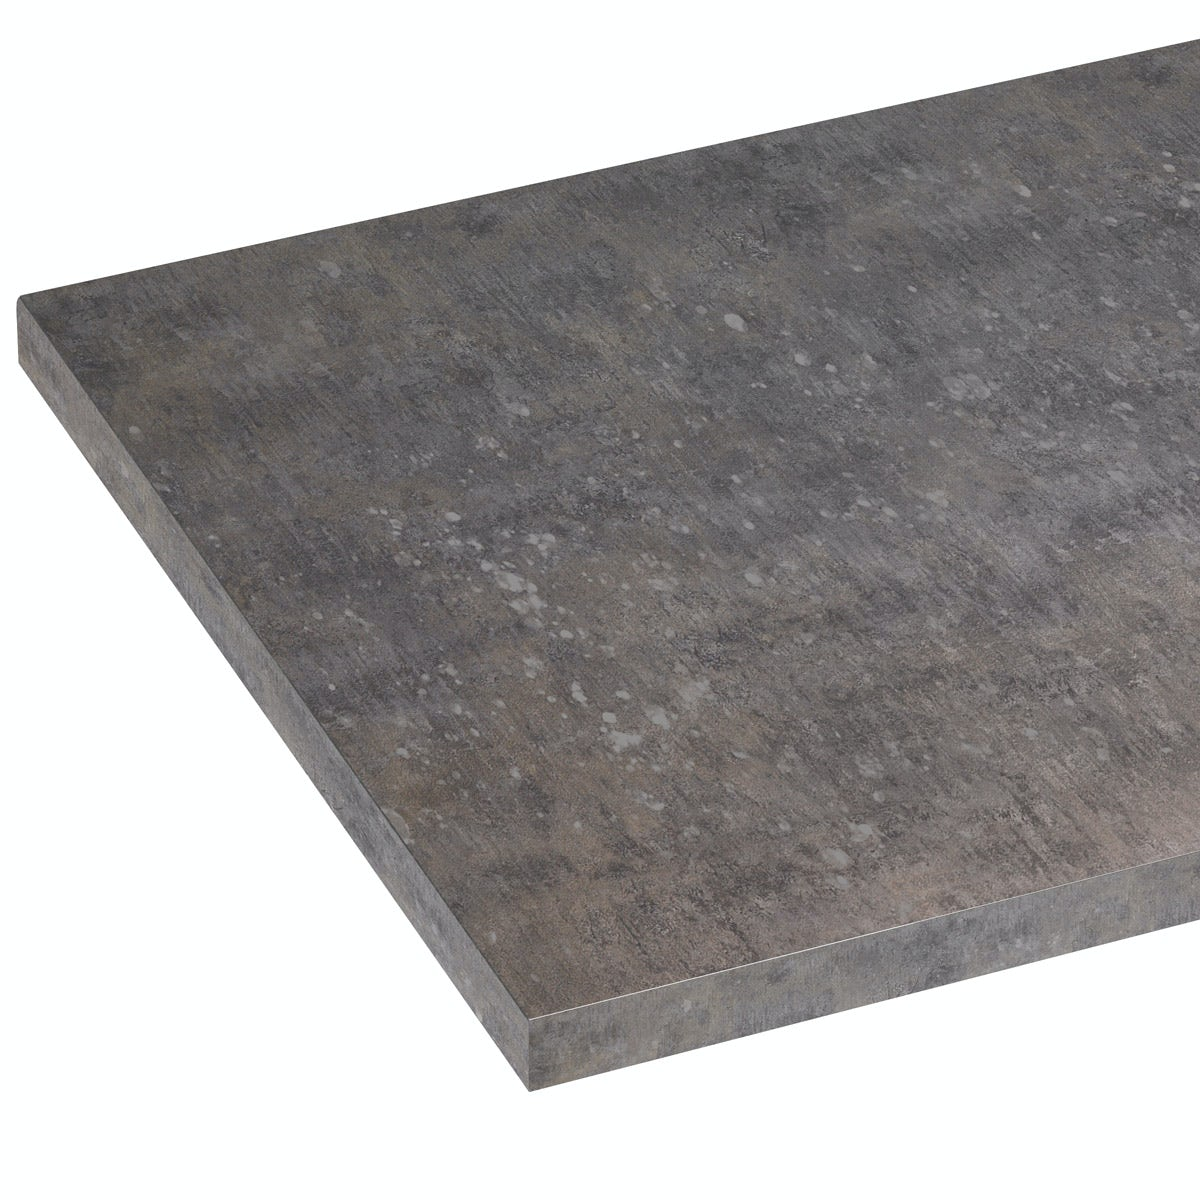 Mode Newbury mineral grey laminate worktop 1.5m